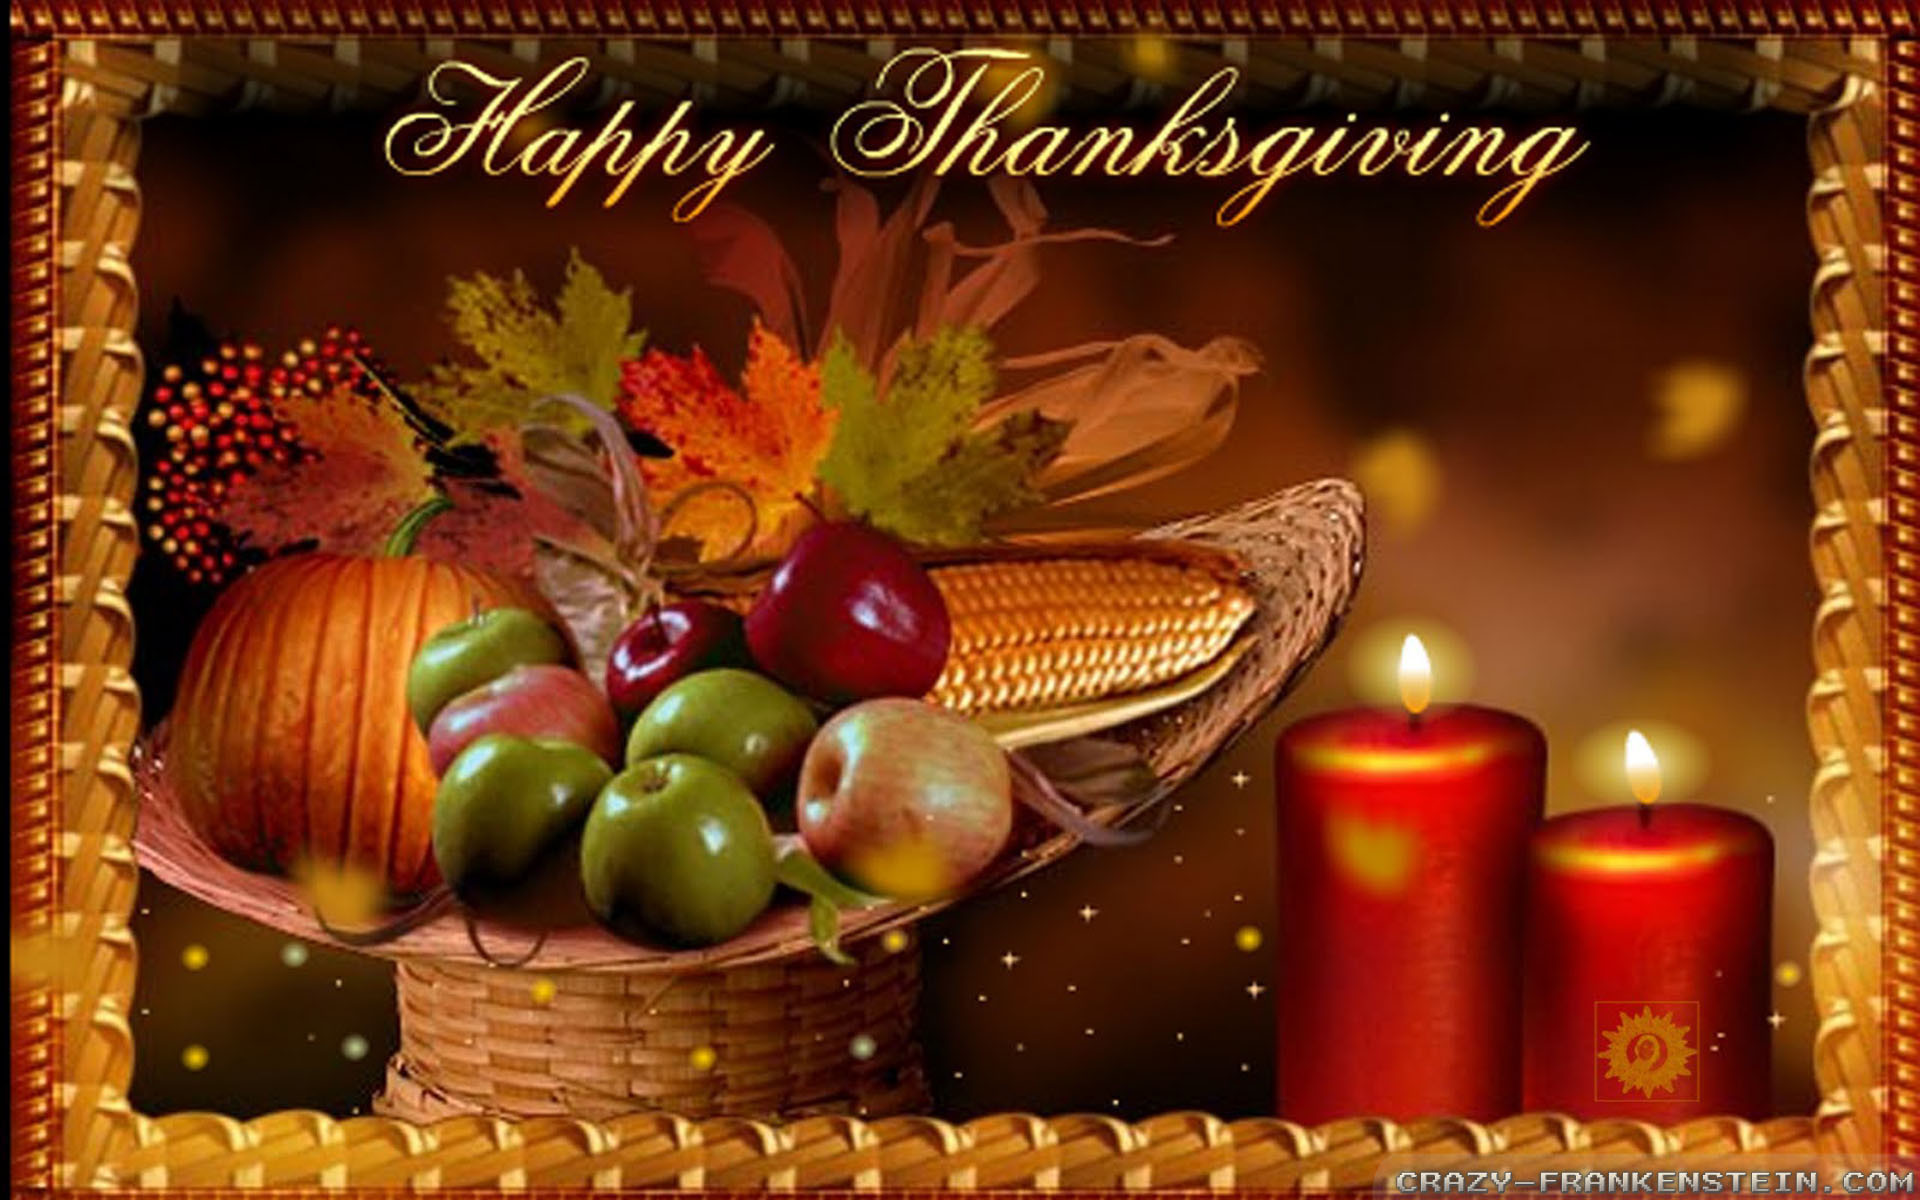 1920x1200 net page 1 original thanksgiving wallpapers thanksgiving